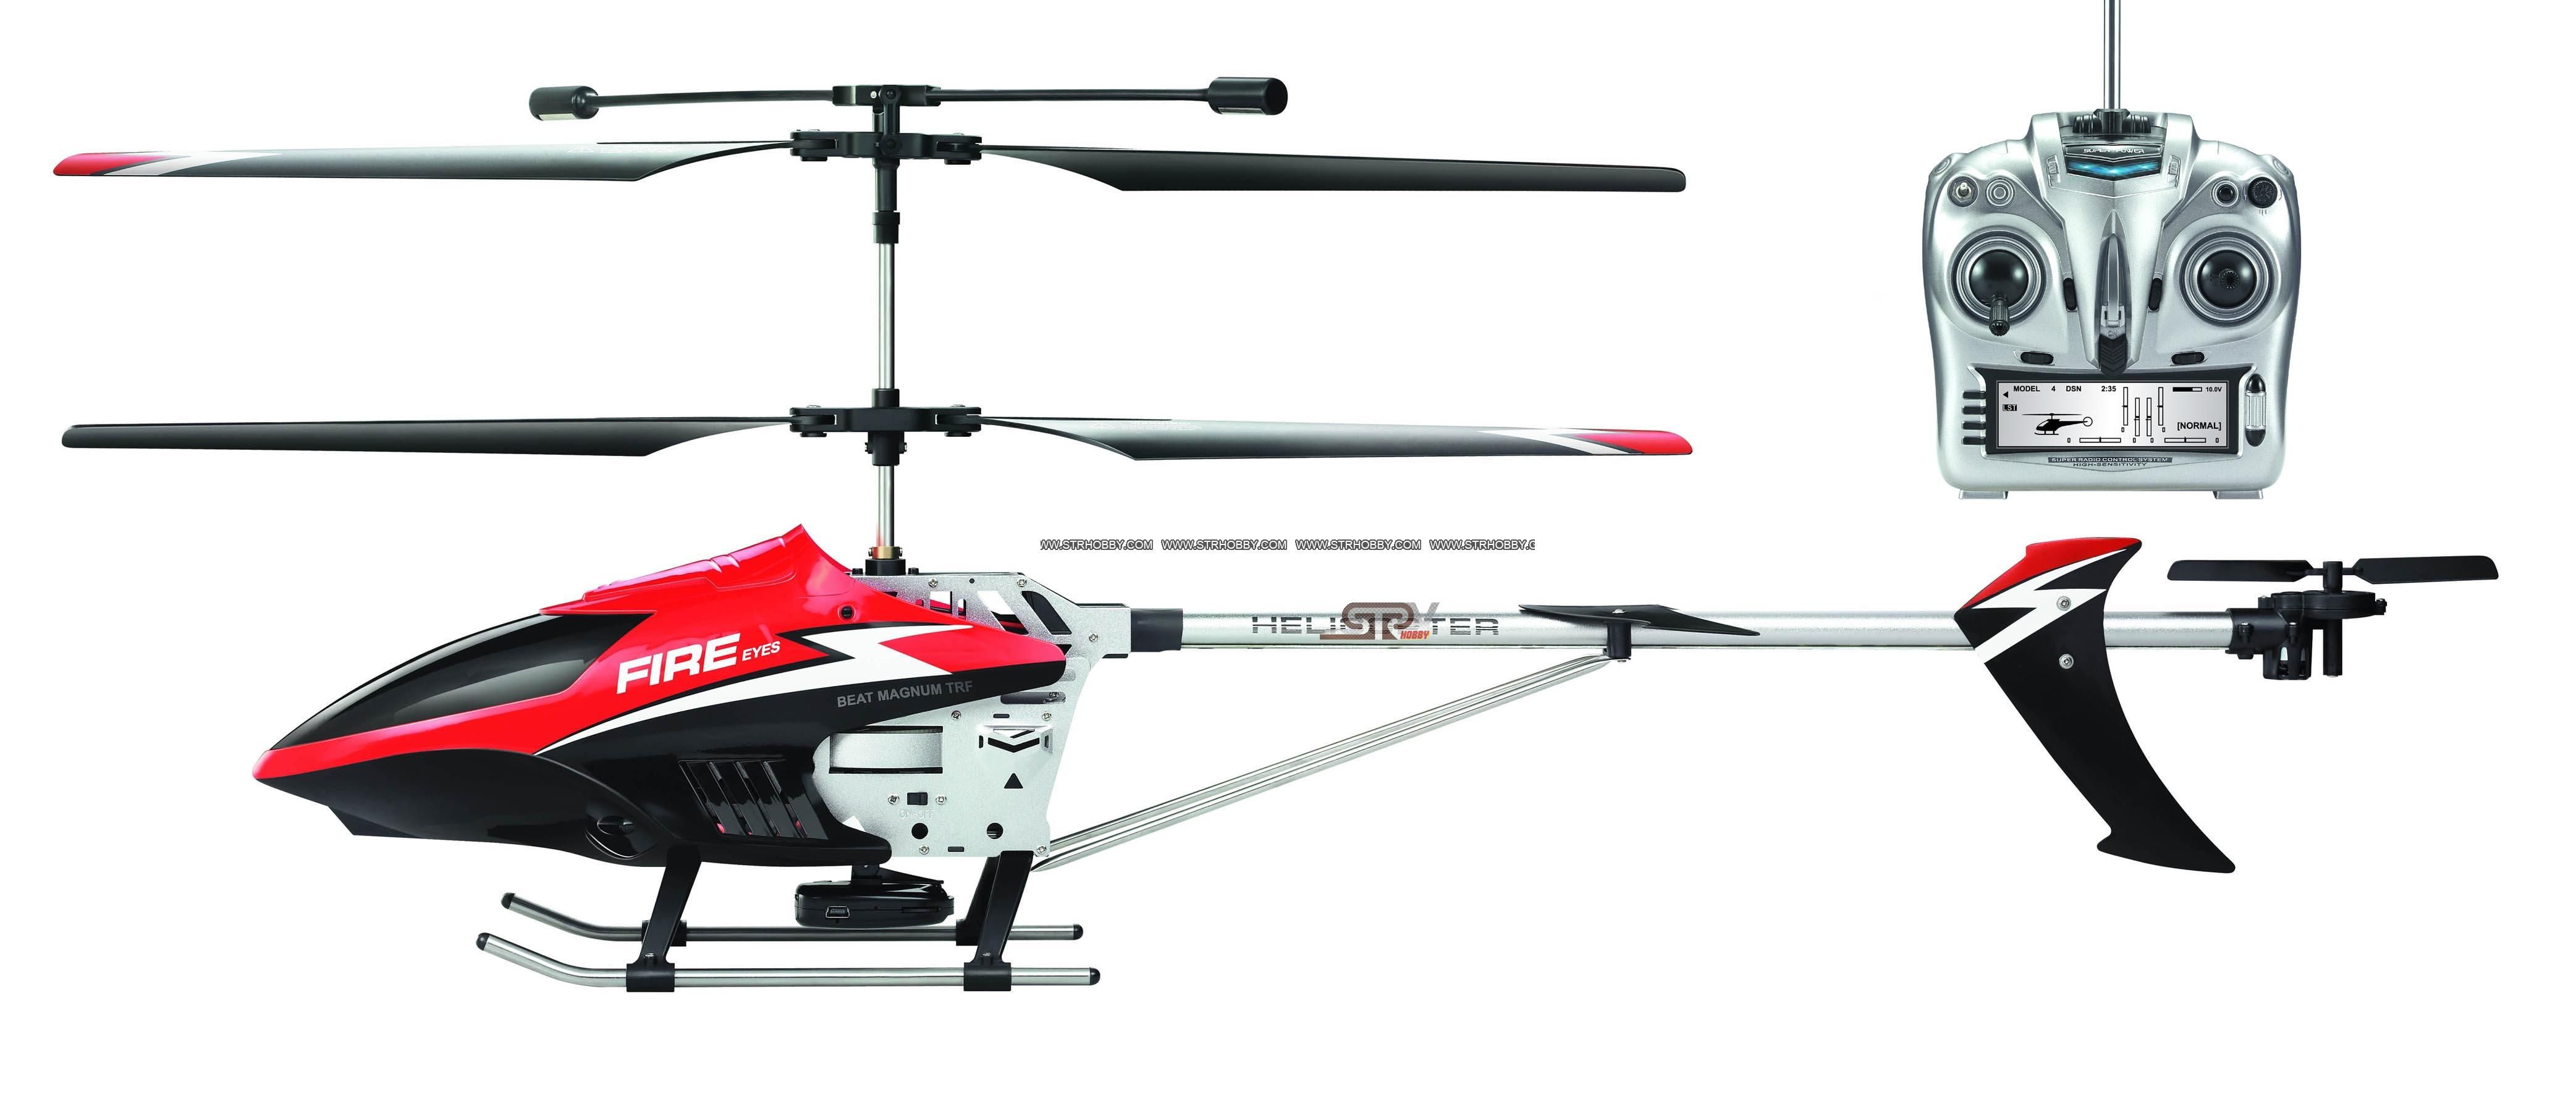 79cm 3ch 3 channel metal Camera rc Helicopter S903 remote control ...